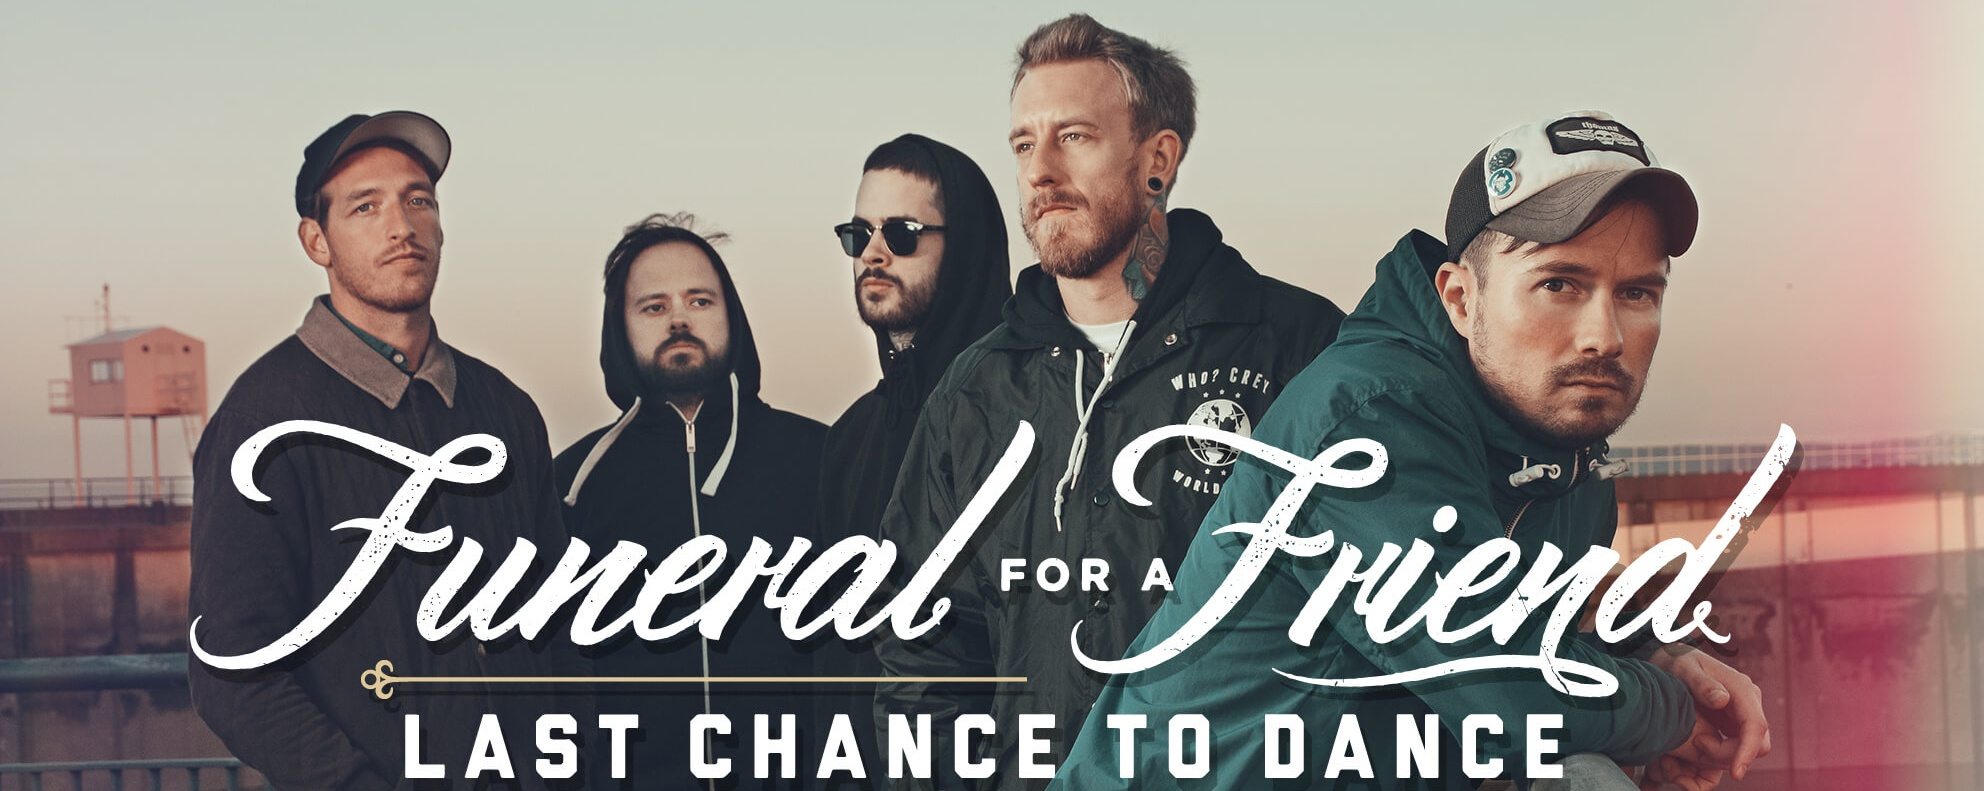 Funeral For A Friend - Last Chance To Dance Tour - Singapore 2016